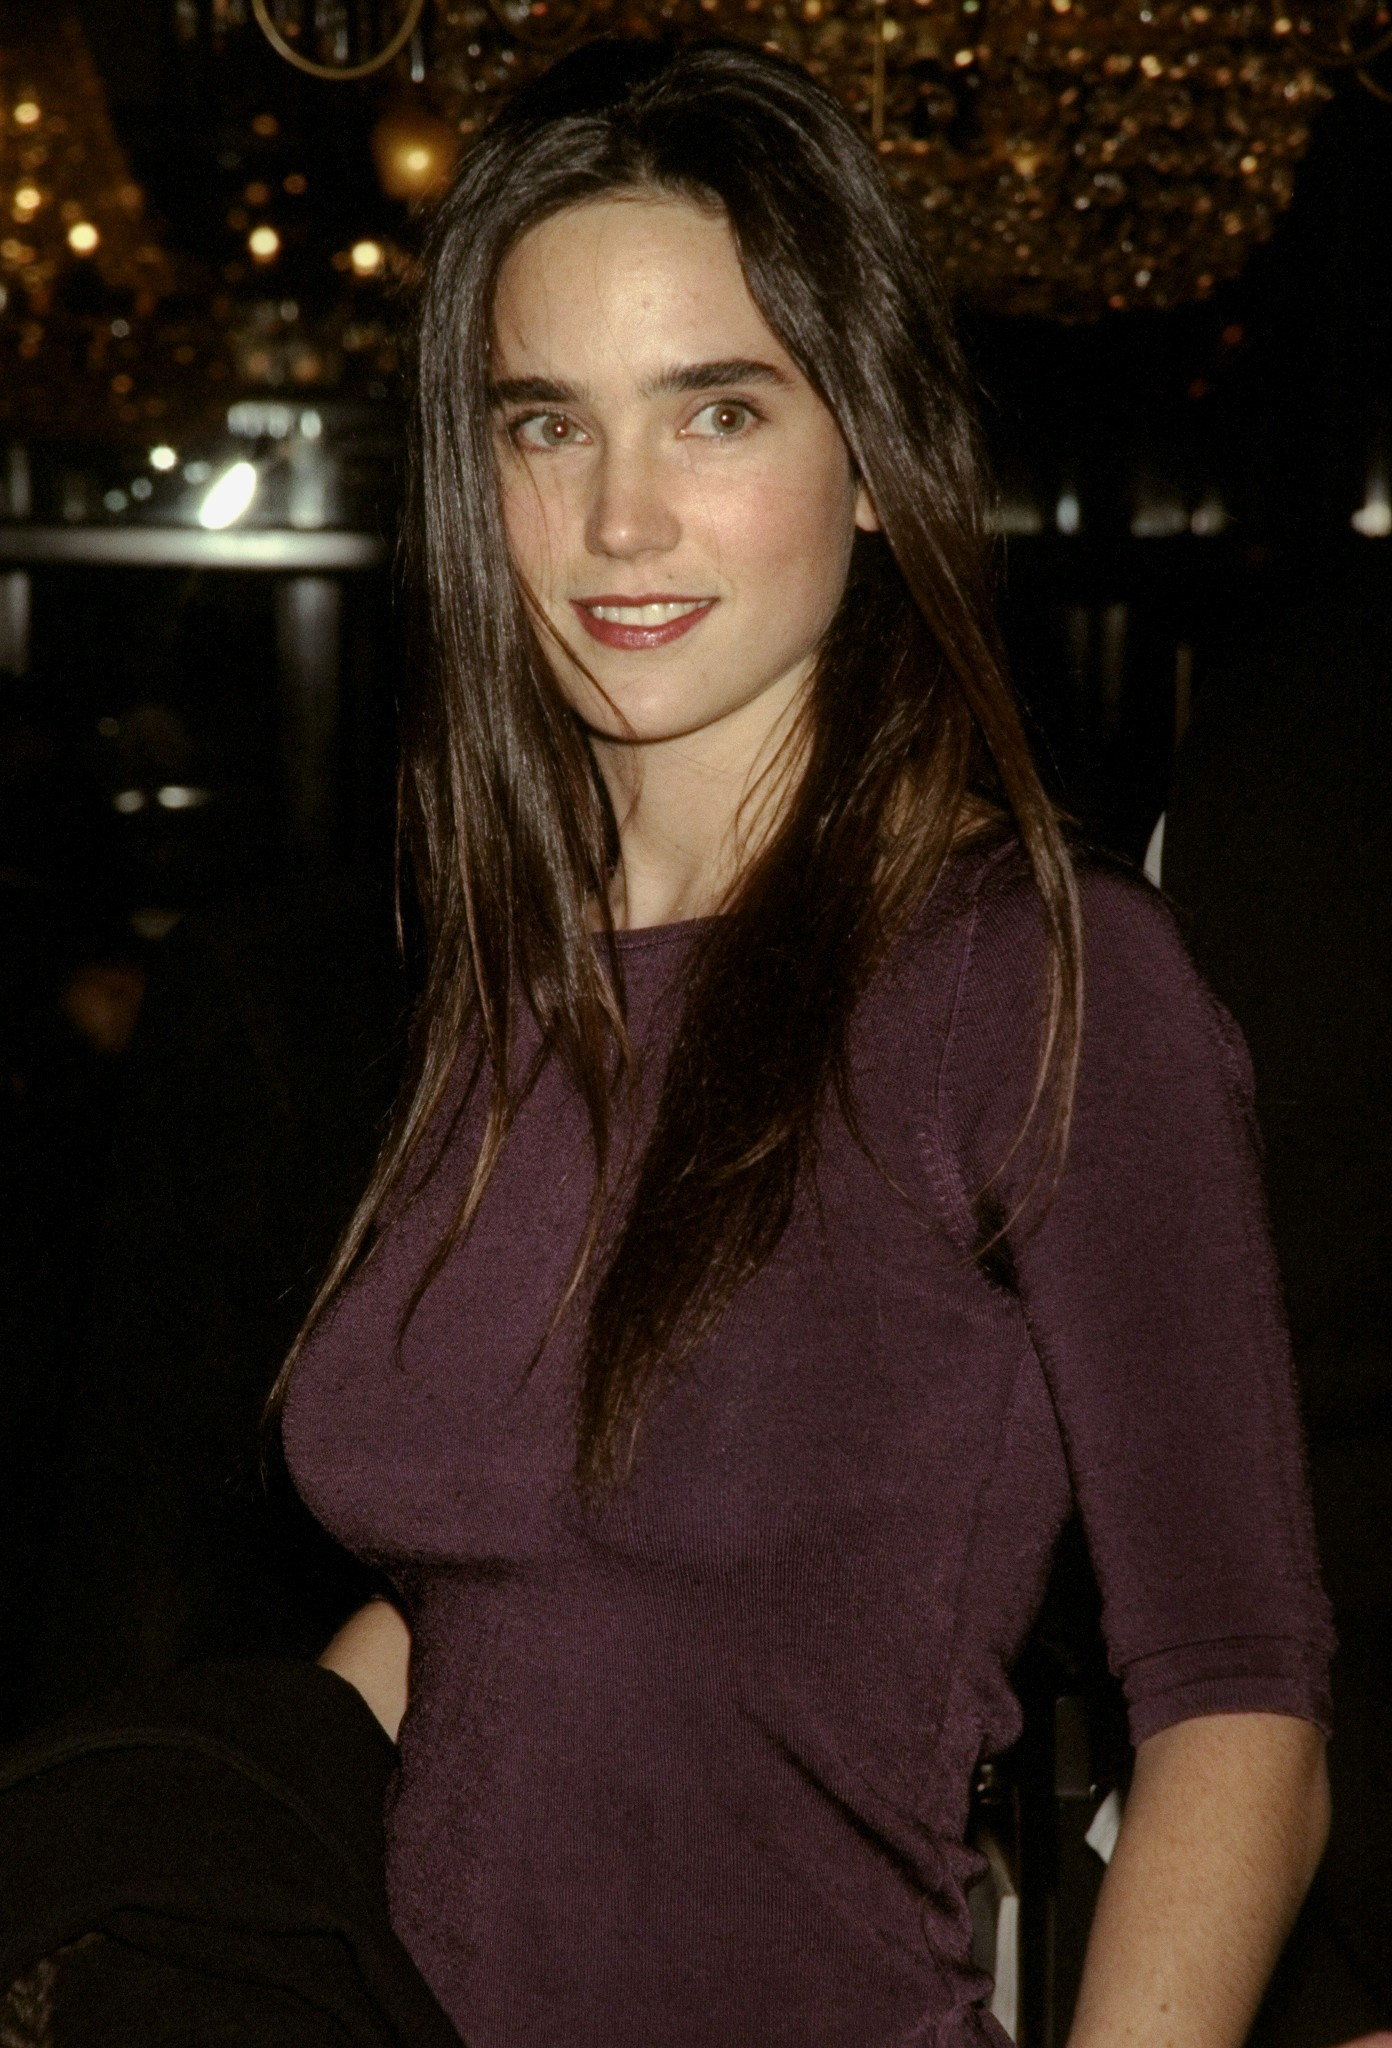 Naked Pictures Of Jennifer Connelly 93